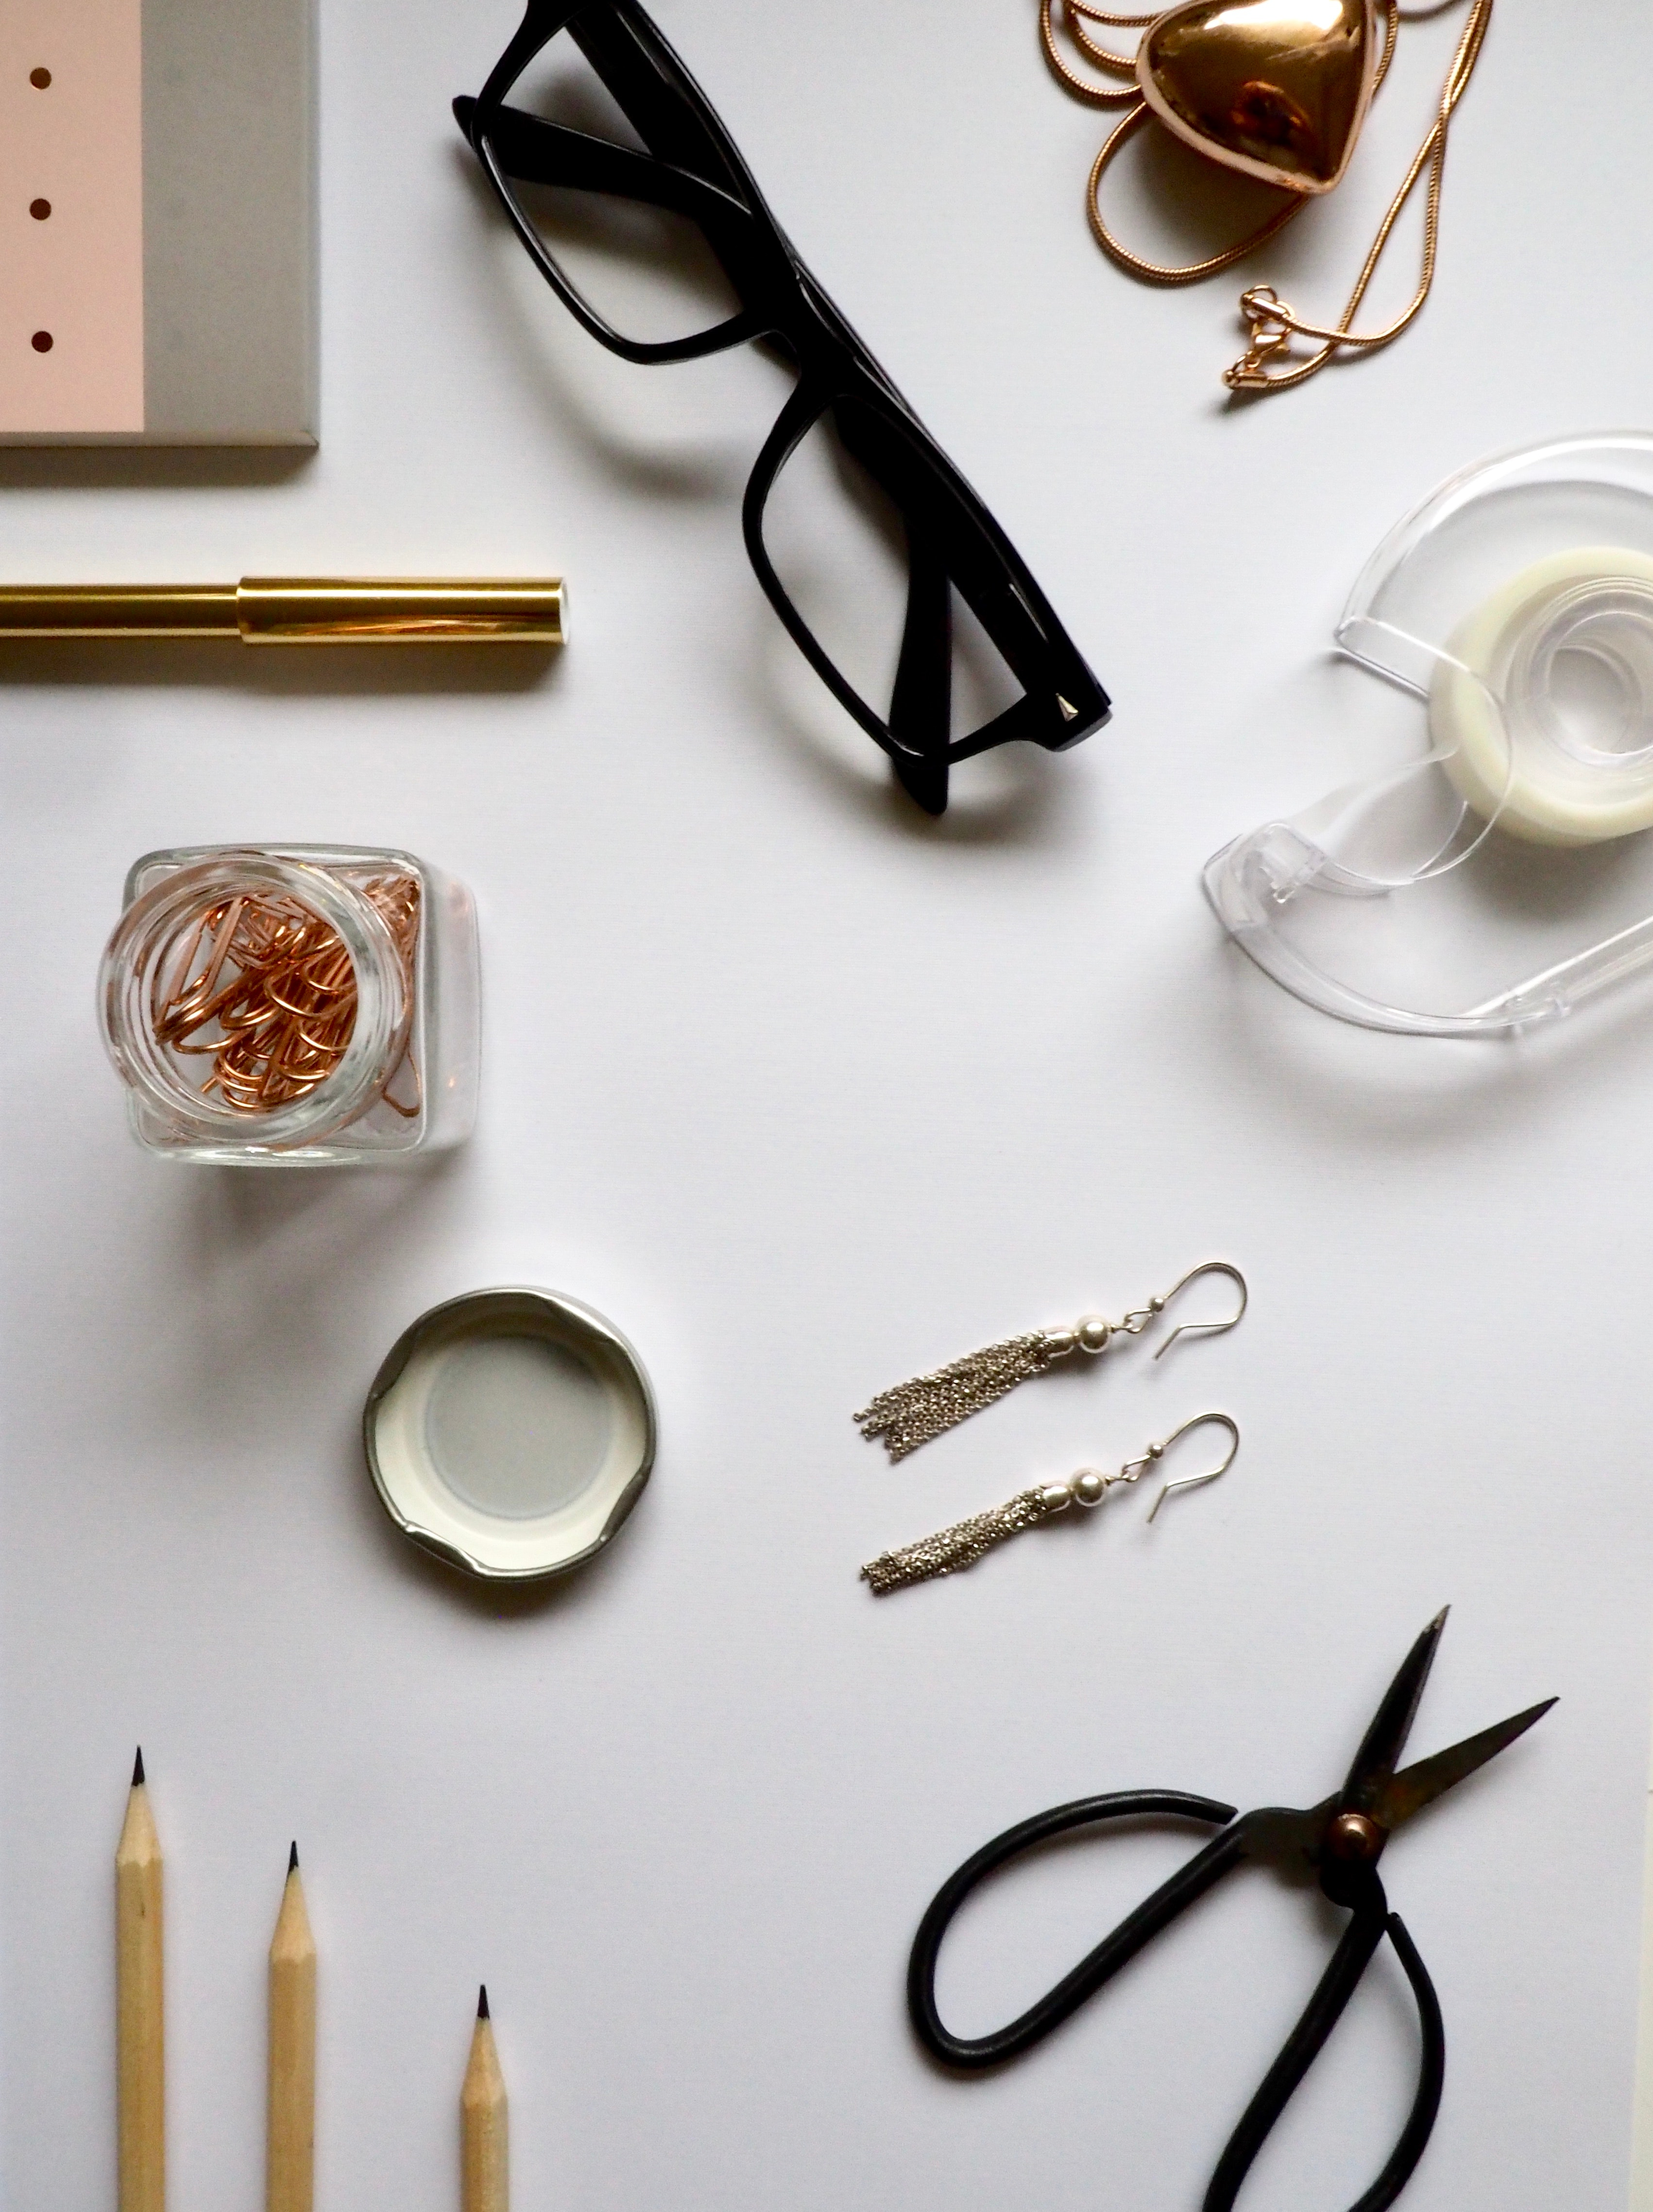 Top-view Photography of White Wooden Table With Personal Accessories on Top, Background, Office, Workspace, Workplace, HQ Photo